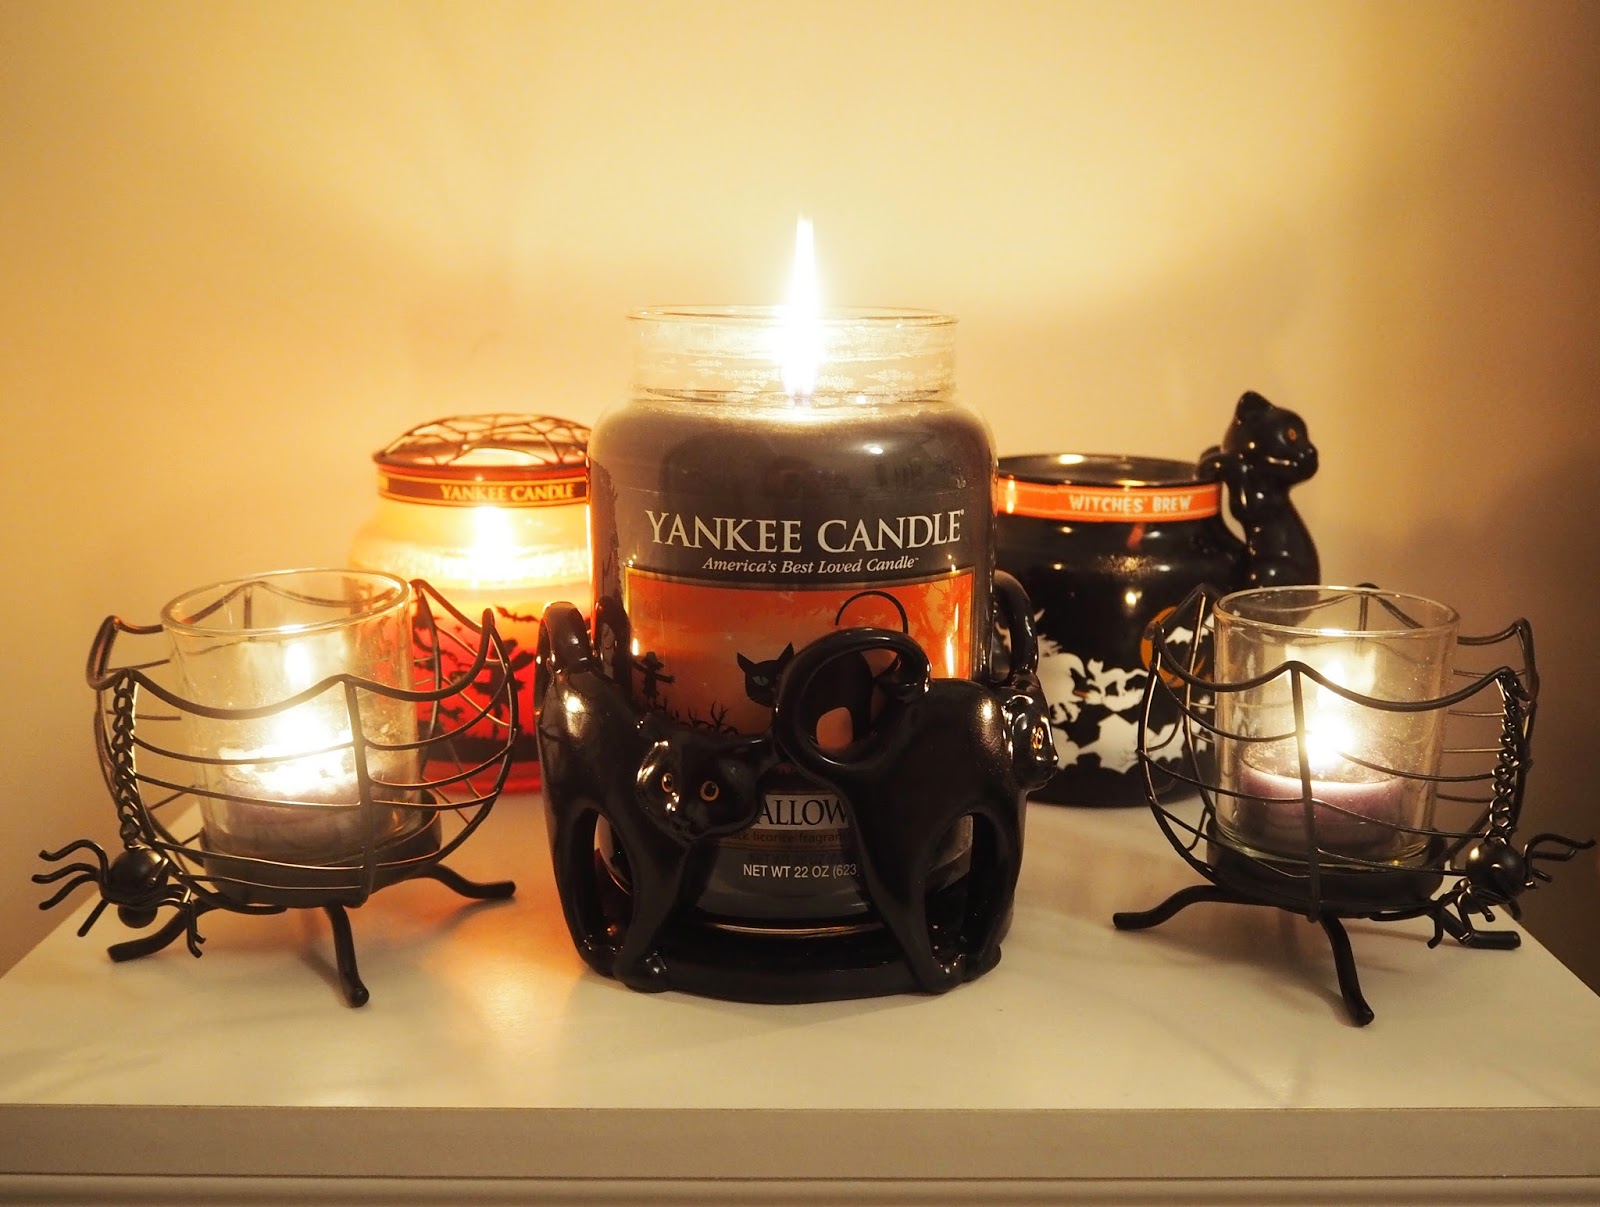 Yankee Candle Halloween Candle Collection   Katie Kirk Loves